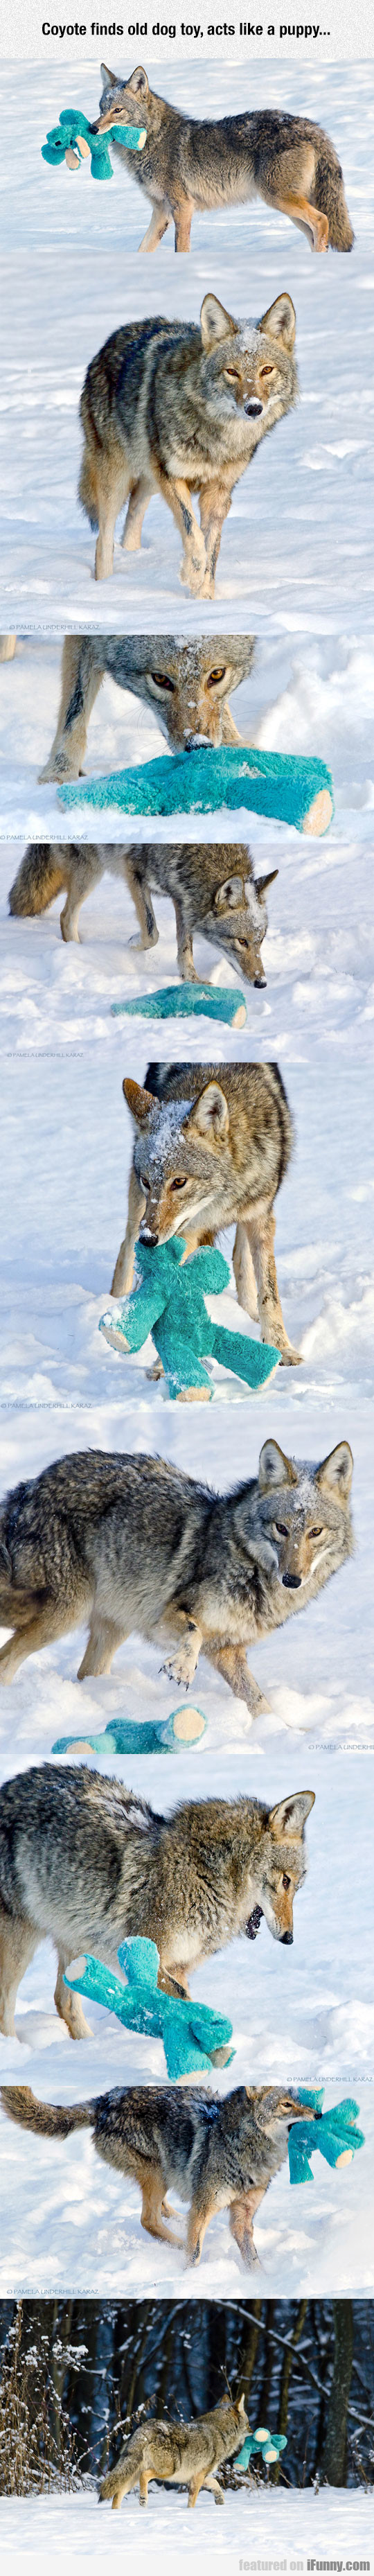 Coyote Finds Old Dog Toy, Acts Like A Puppy...